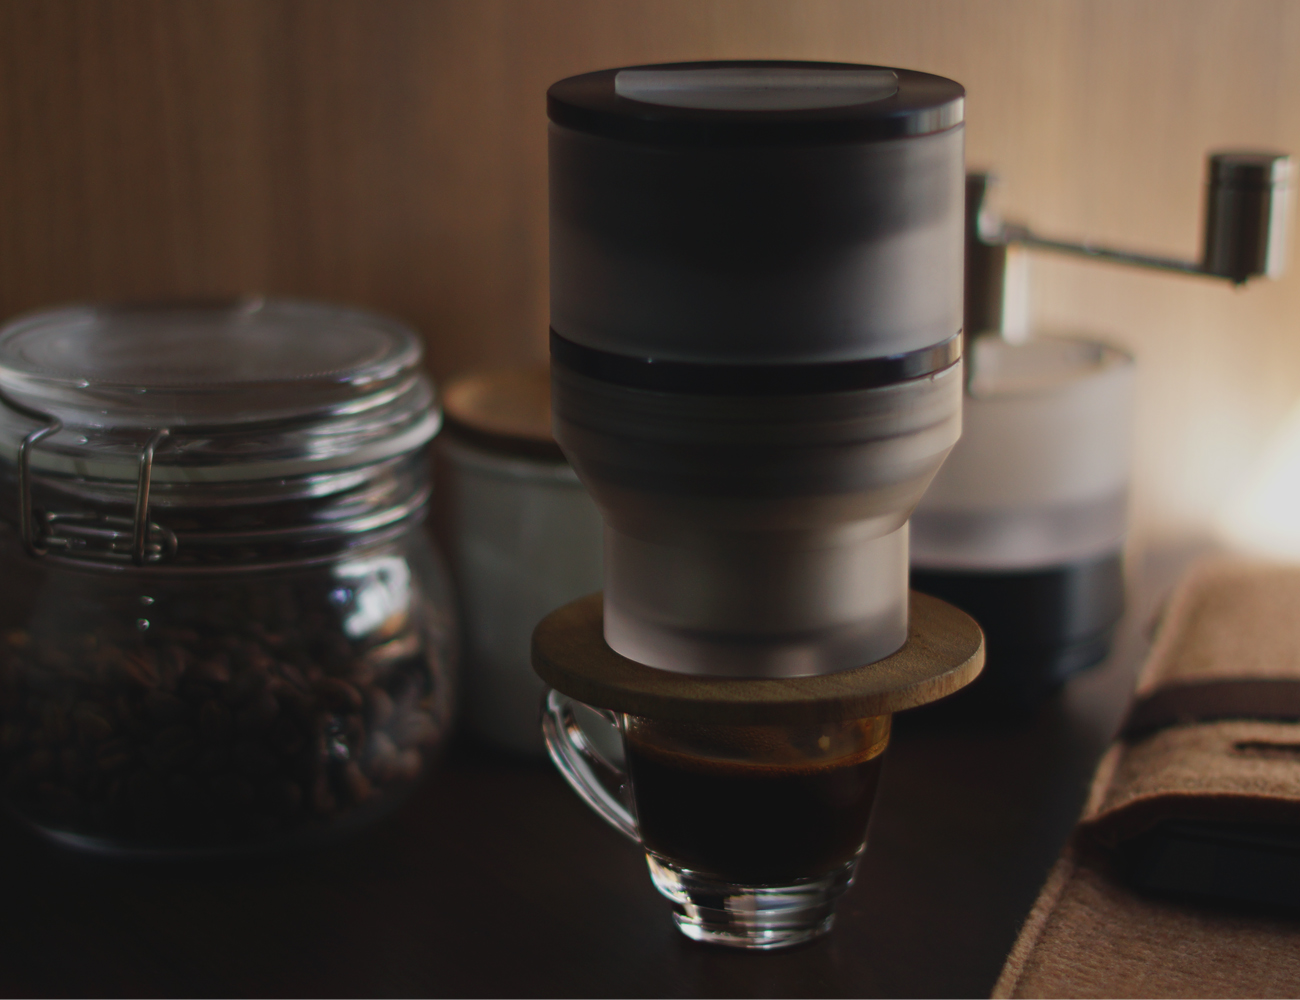 Portable Coffee Maker For Work : Build Your Own Portable Coffee Maker at Home, at Work -- Anywhere!